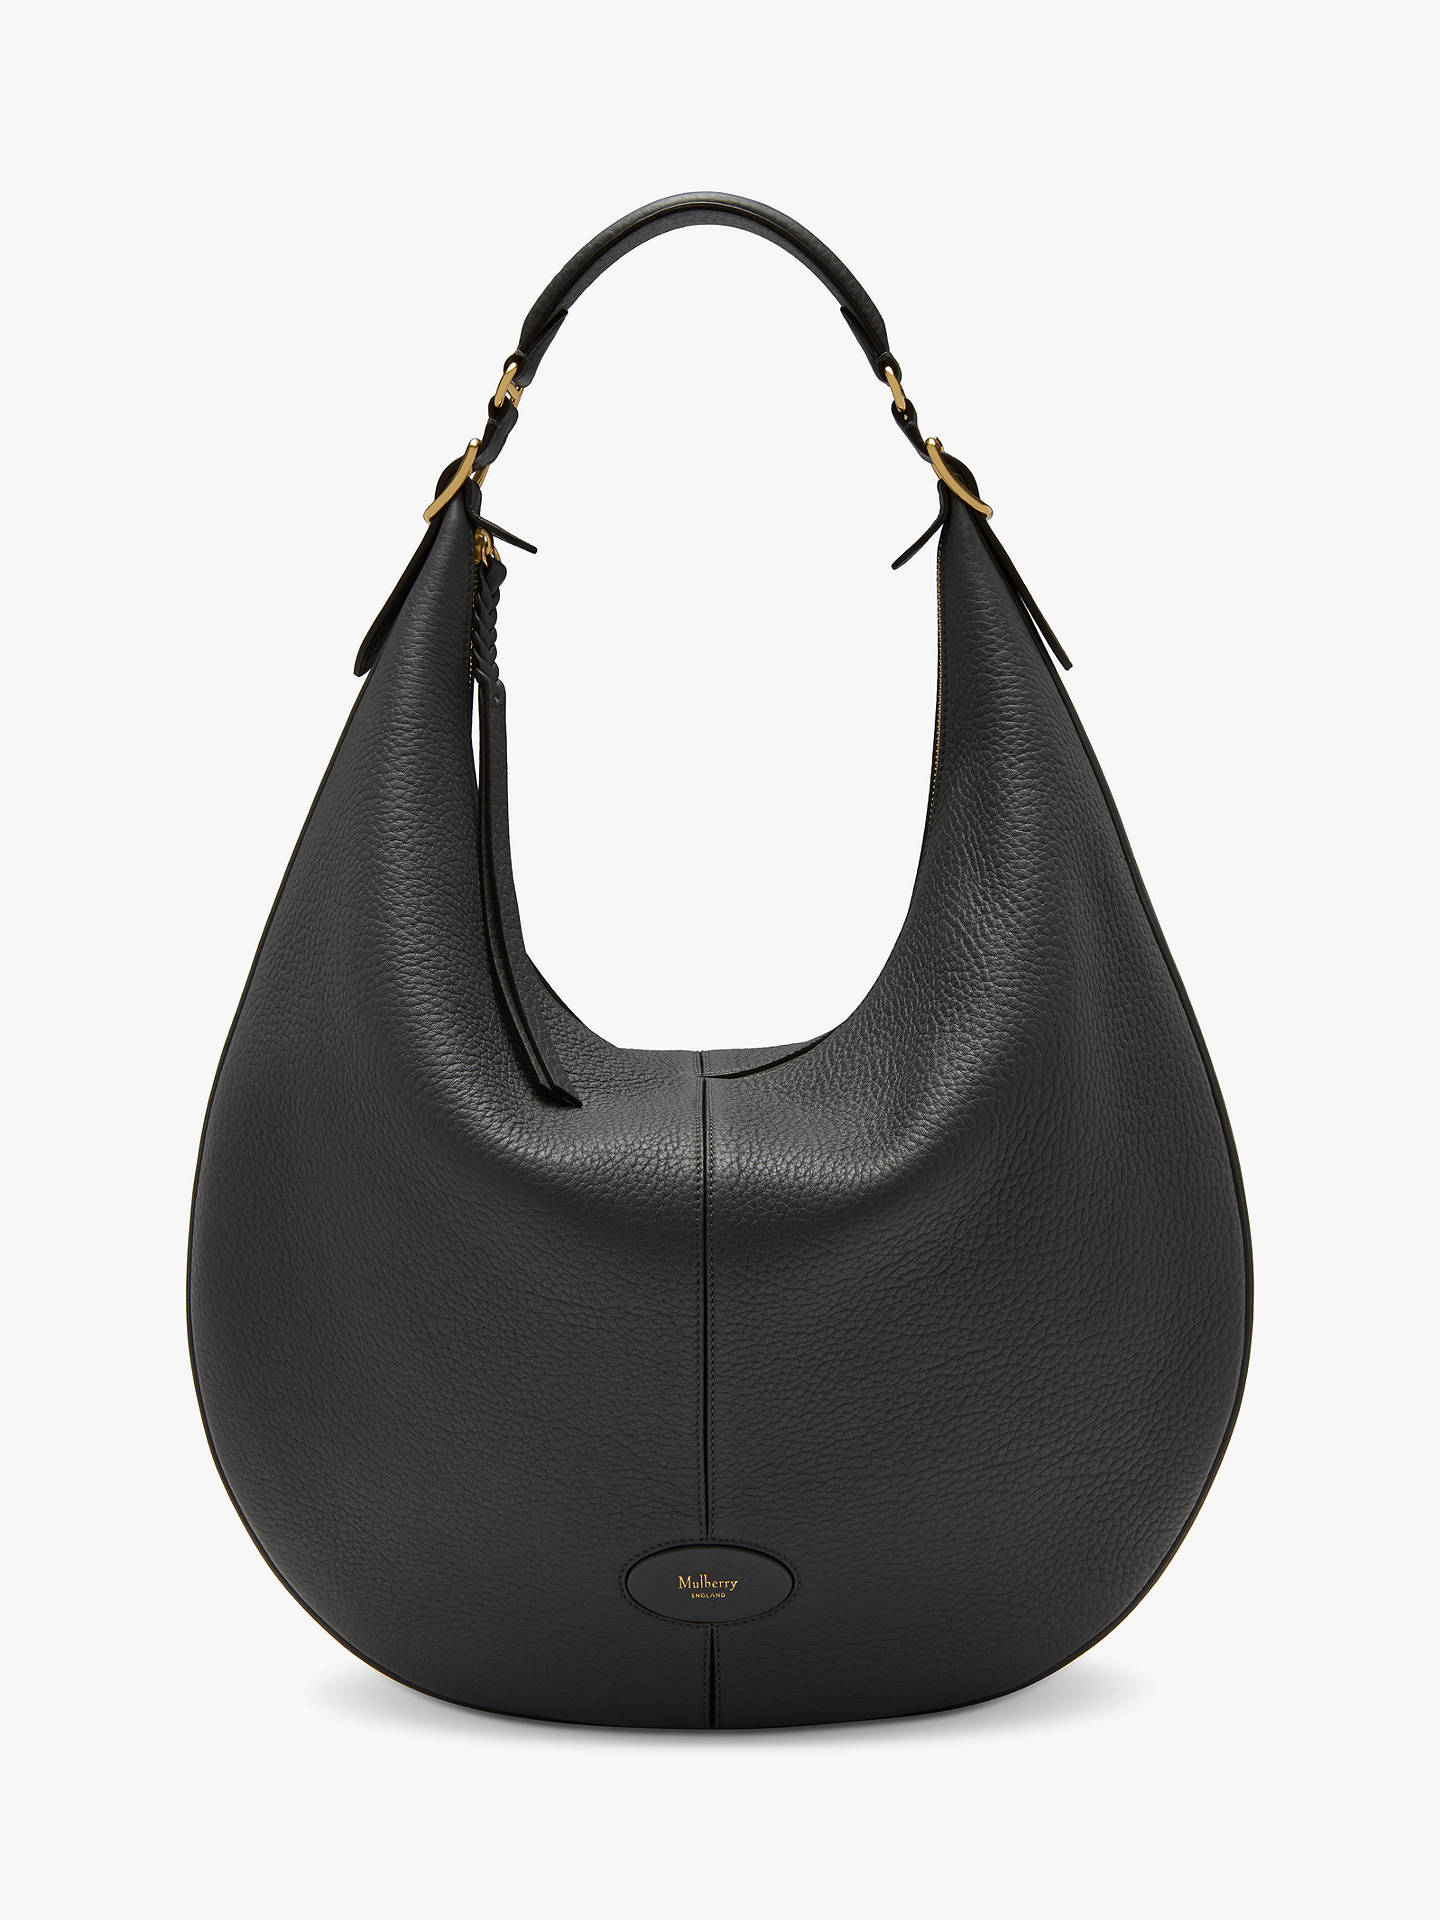 Mulberry Selby Large Classic Grain Leather Hobo Bag at John Lewis ... 8b747c98280a3